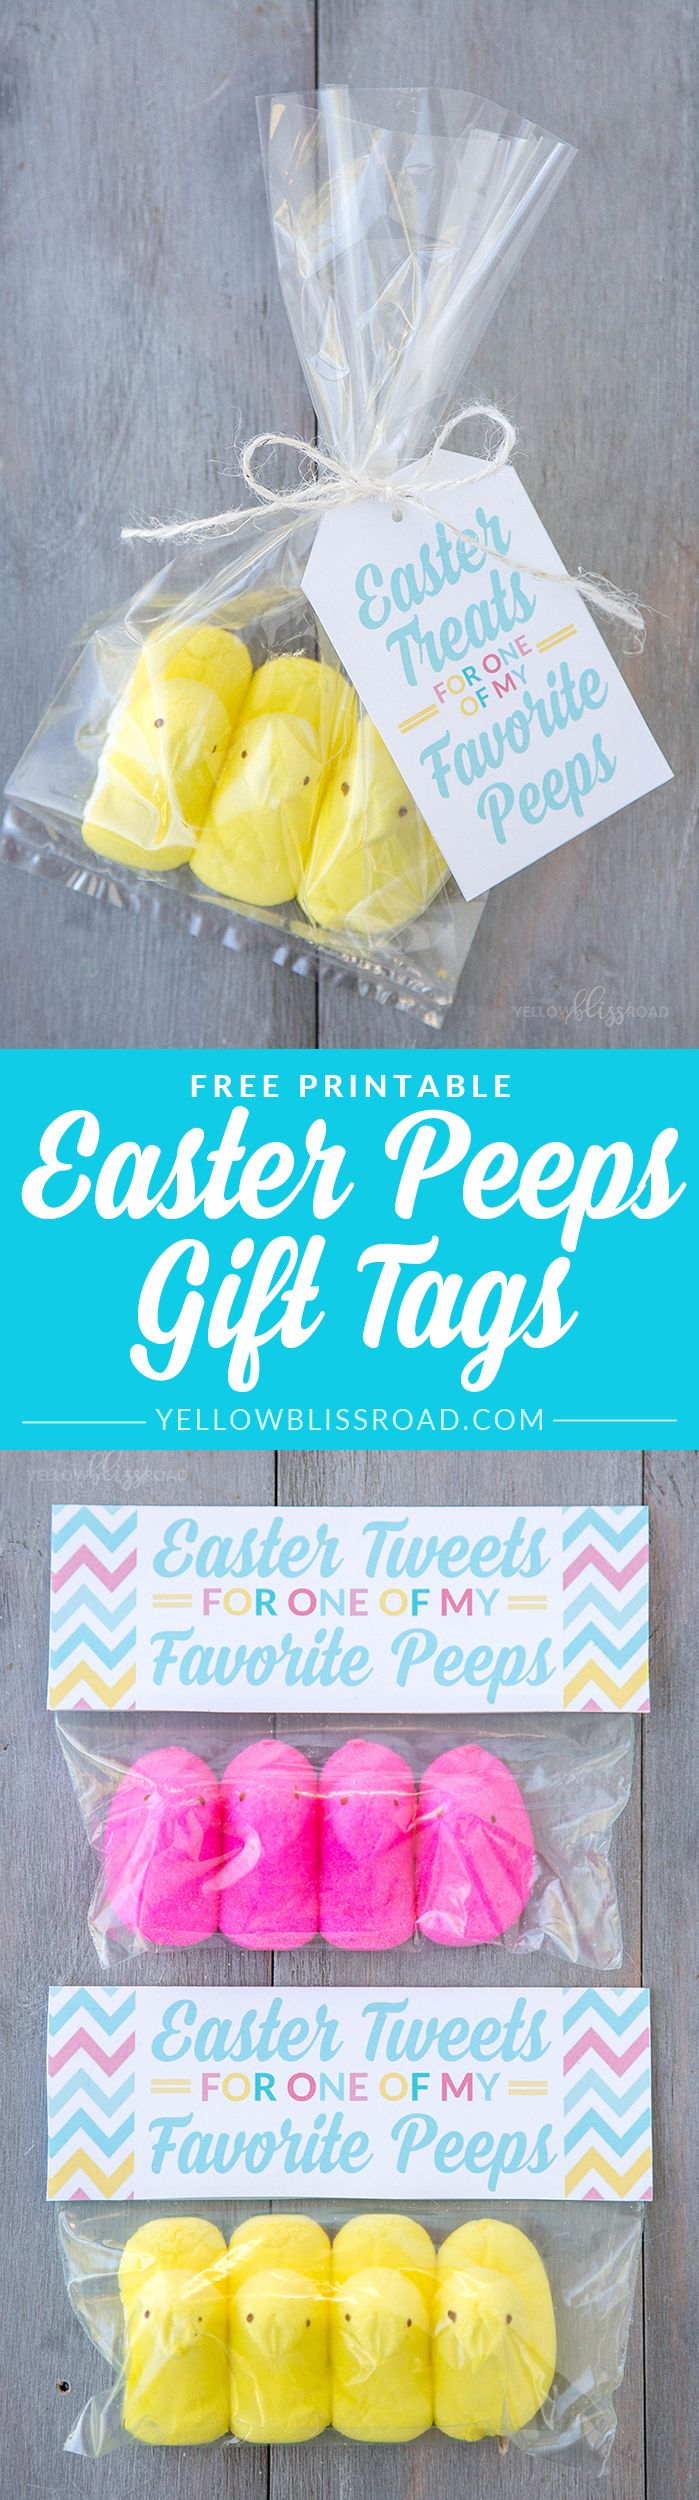 Peeps easter gift idea with free printables free printable gift free printable peeps easter gift tags use these free printable gift tags to make sweet easter gifts for your favorite peeps negle Gallery